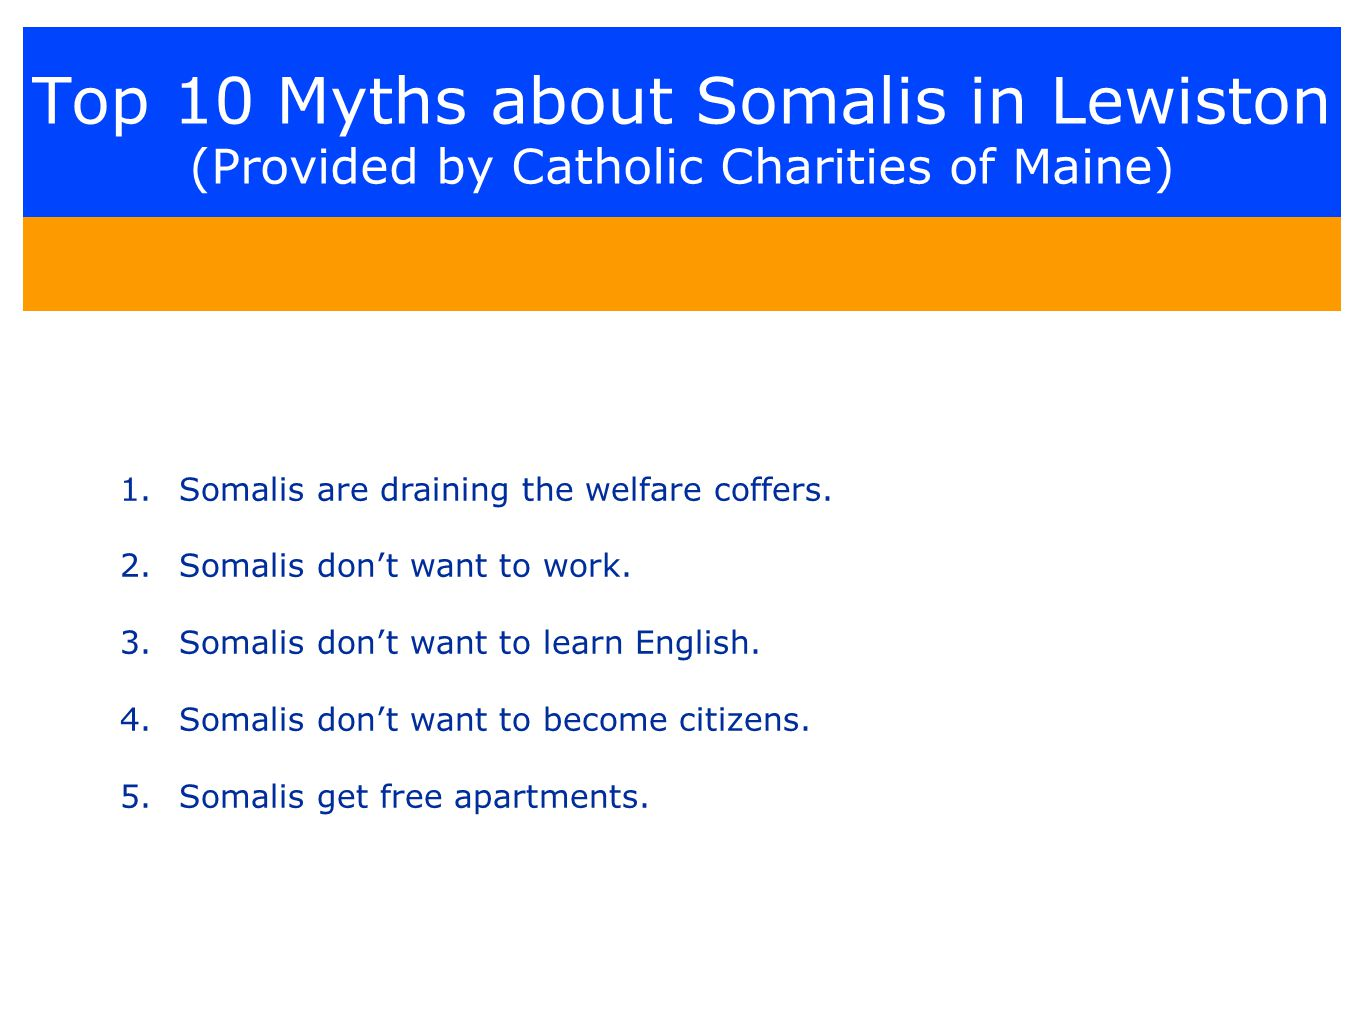 Top 10 Myths about Somalis in Lewiston (Provided by Catholic Charities of Maine) 1.